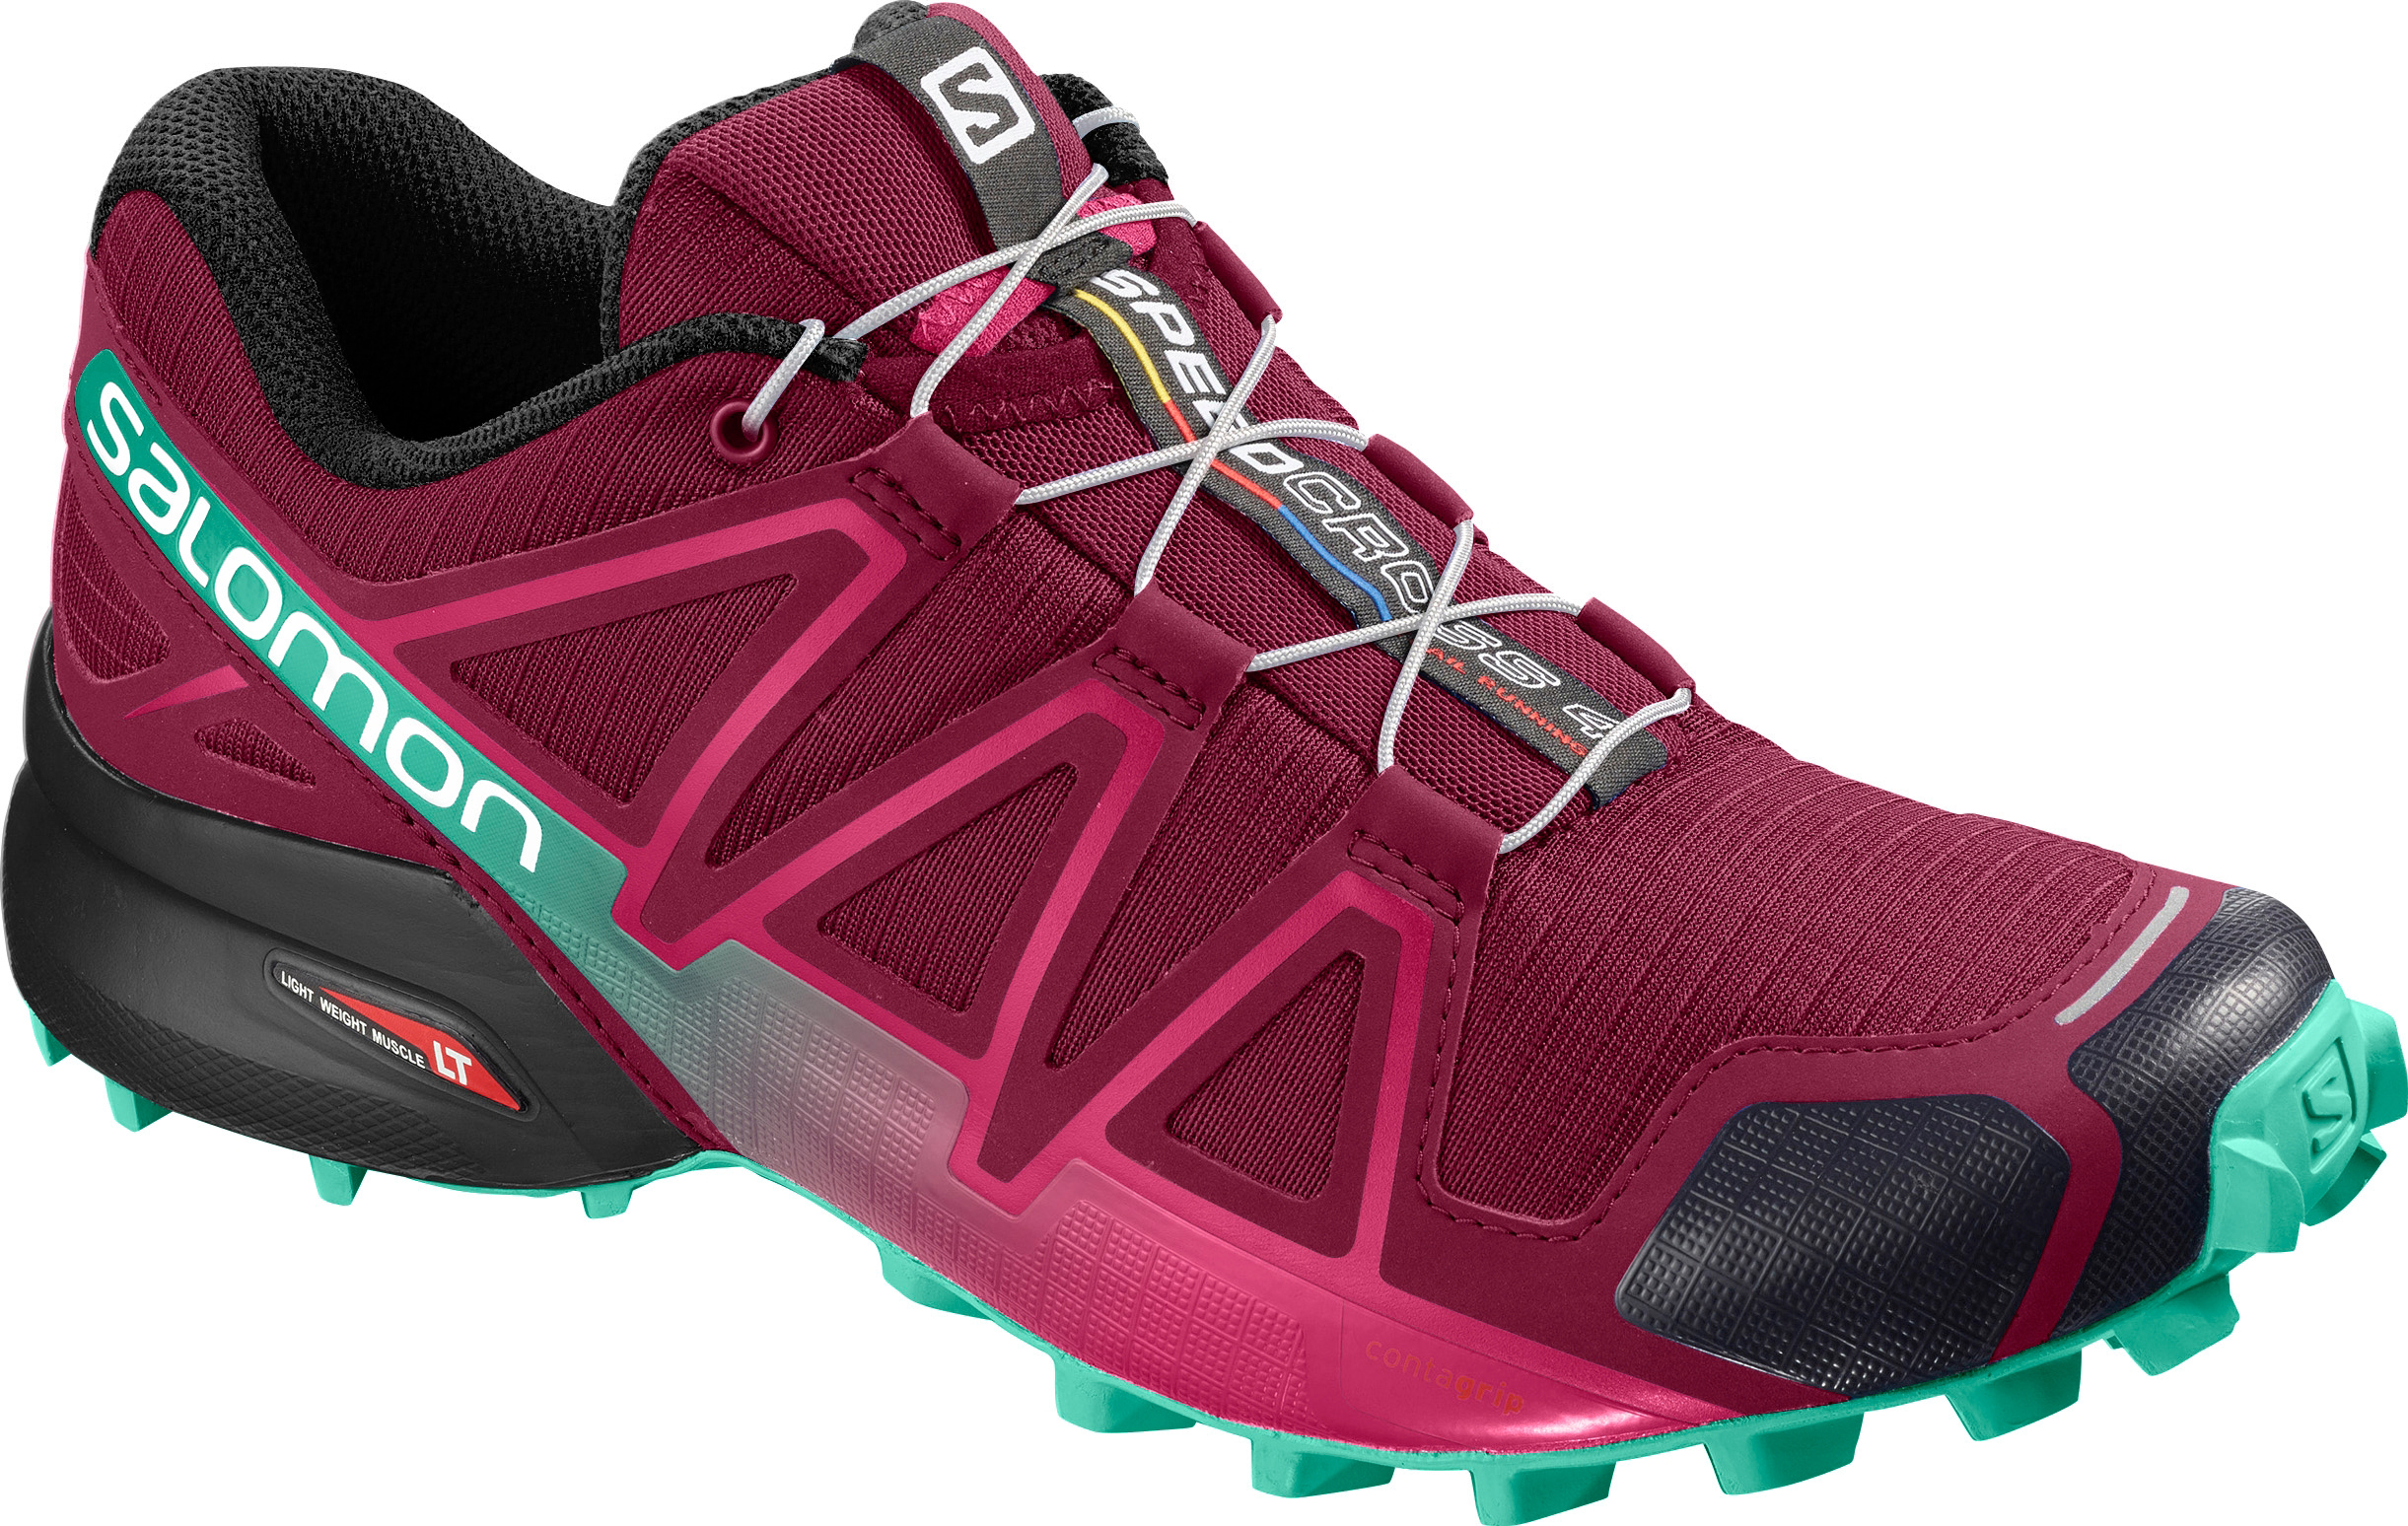 cdf9aa2899d3 Salomon Shoes